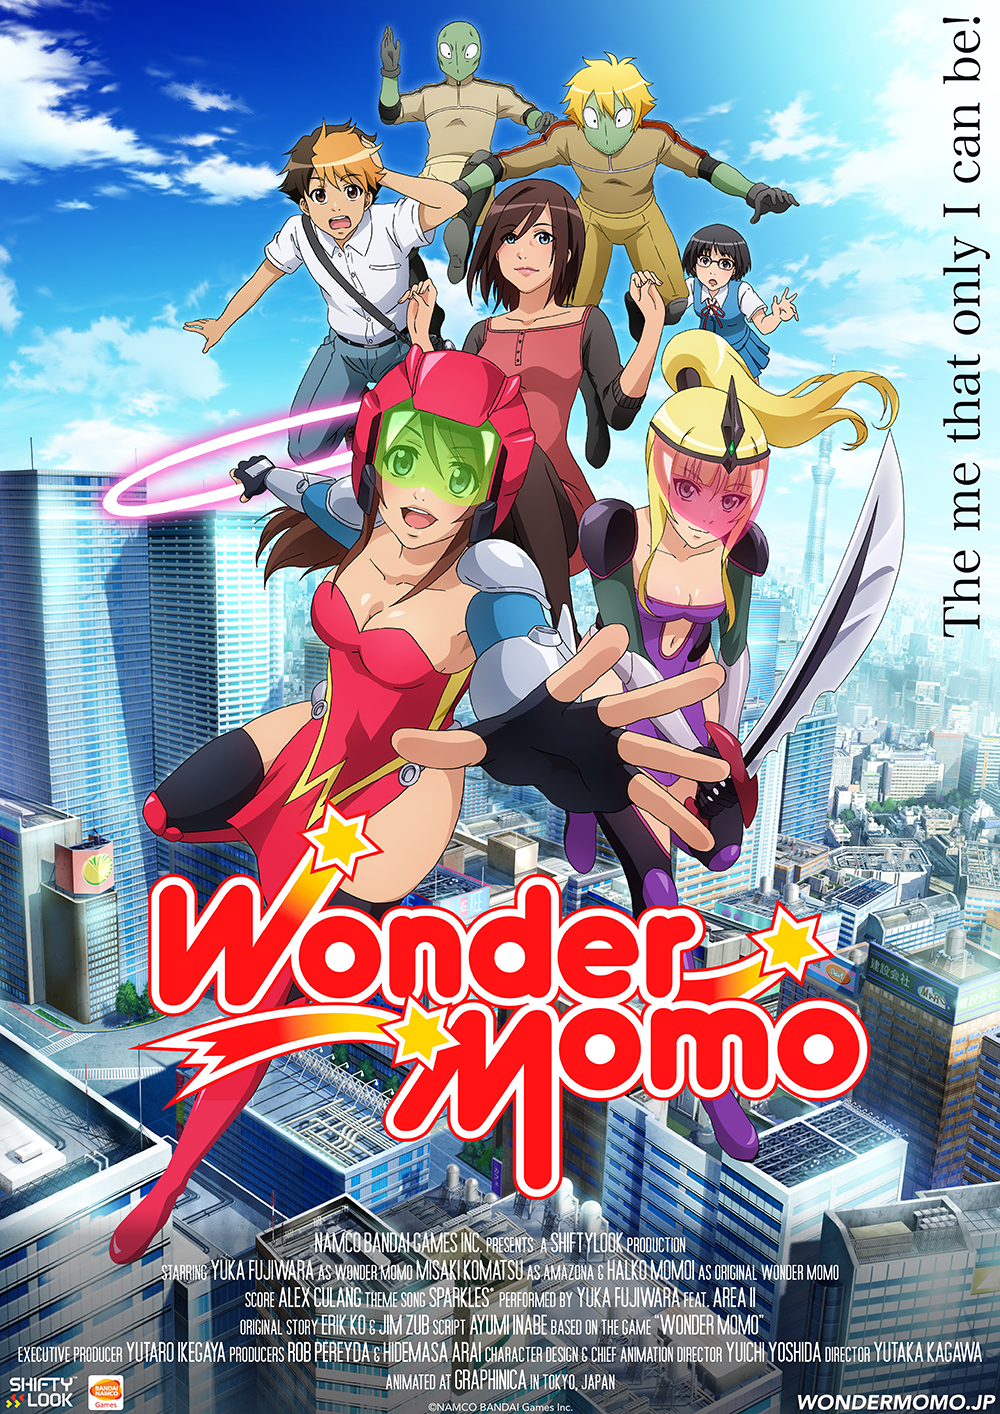 NAMCO BANDAI GAMES' SHIFTYLOOK BRINGS WONDER MOMO BACK WITH NEW ANIME, GAME AND MUSIC